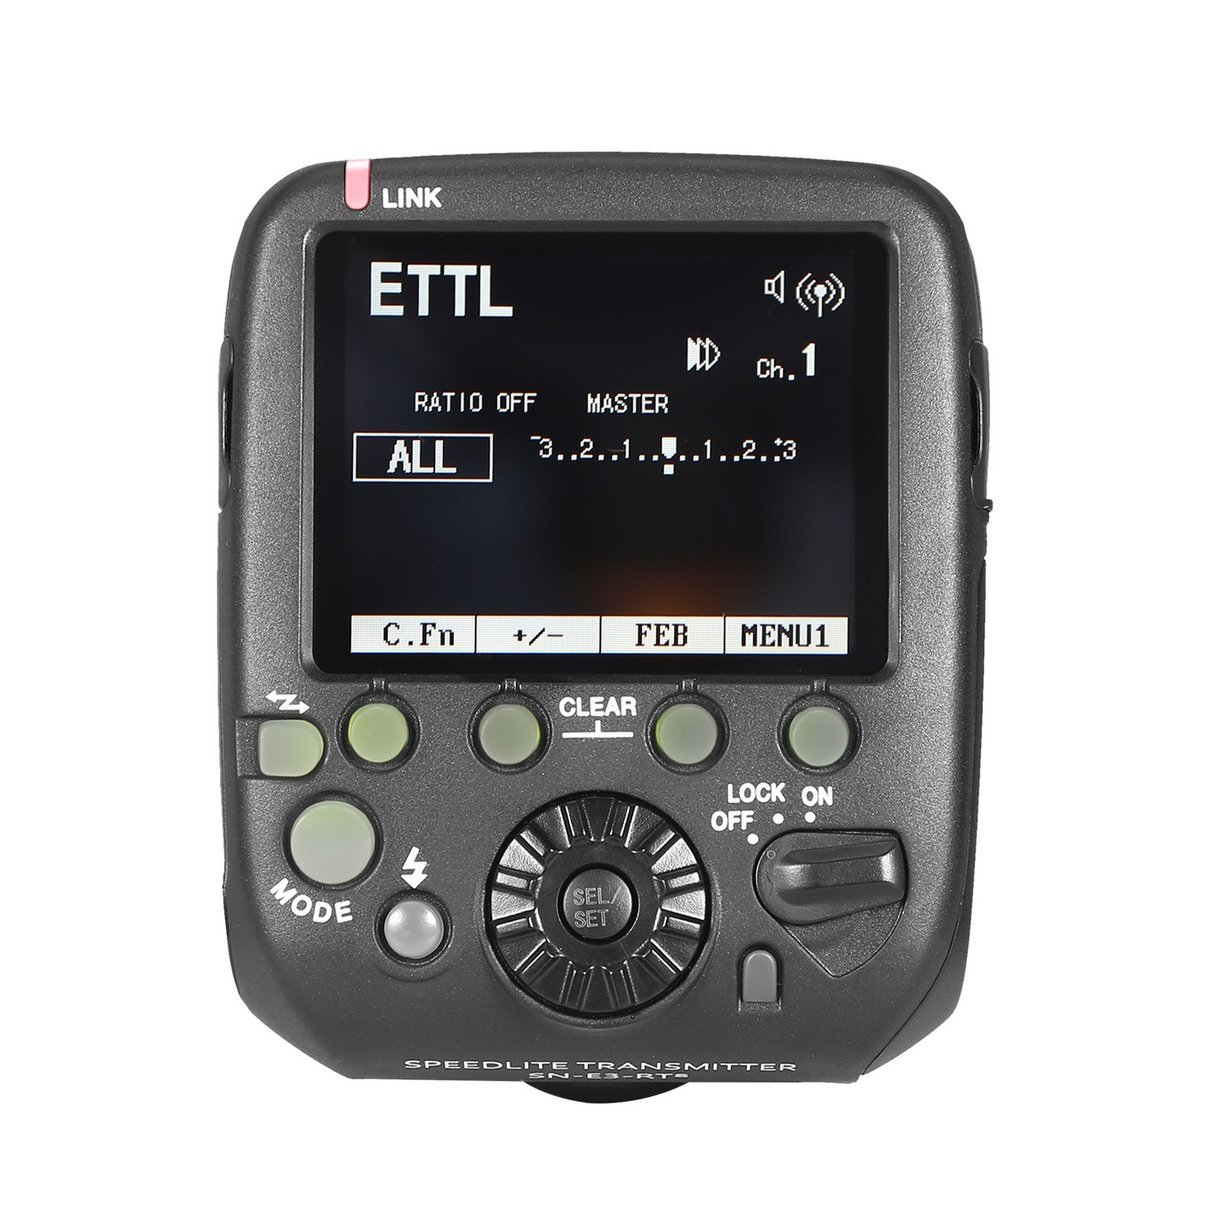 Shanny SN-E3-RTs Transmitter Flash Trigger for Canon 600EX-RT Yongnuo YN600EX-RT AS Yongnuo YN-E3-RT yongnuo trigger flash trigger yn e3 rt e3 rt e3rt ttl flash speedlite wireless transmitter for canon 600ex rt as st e3 rt